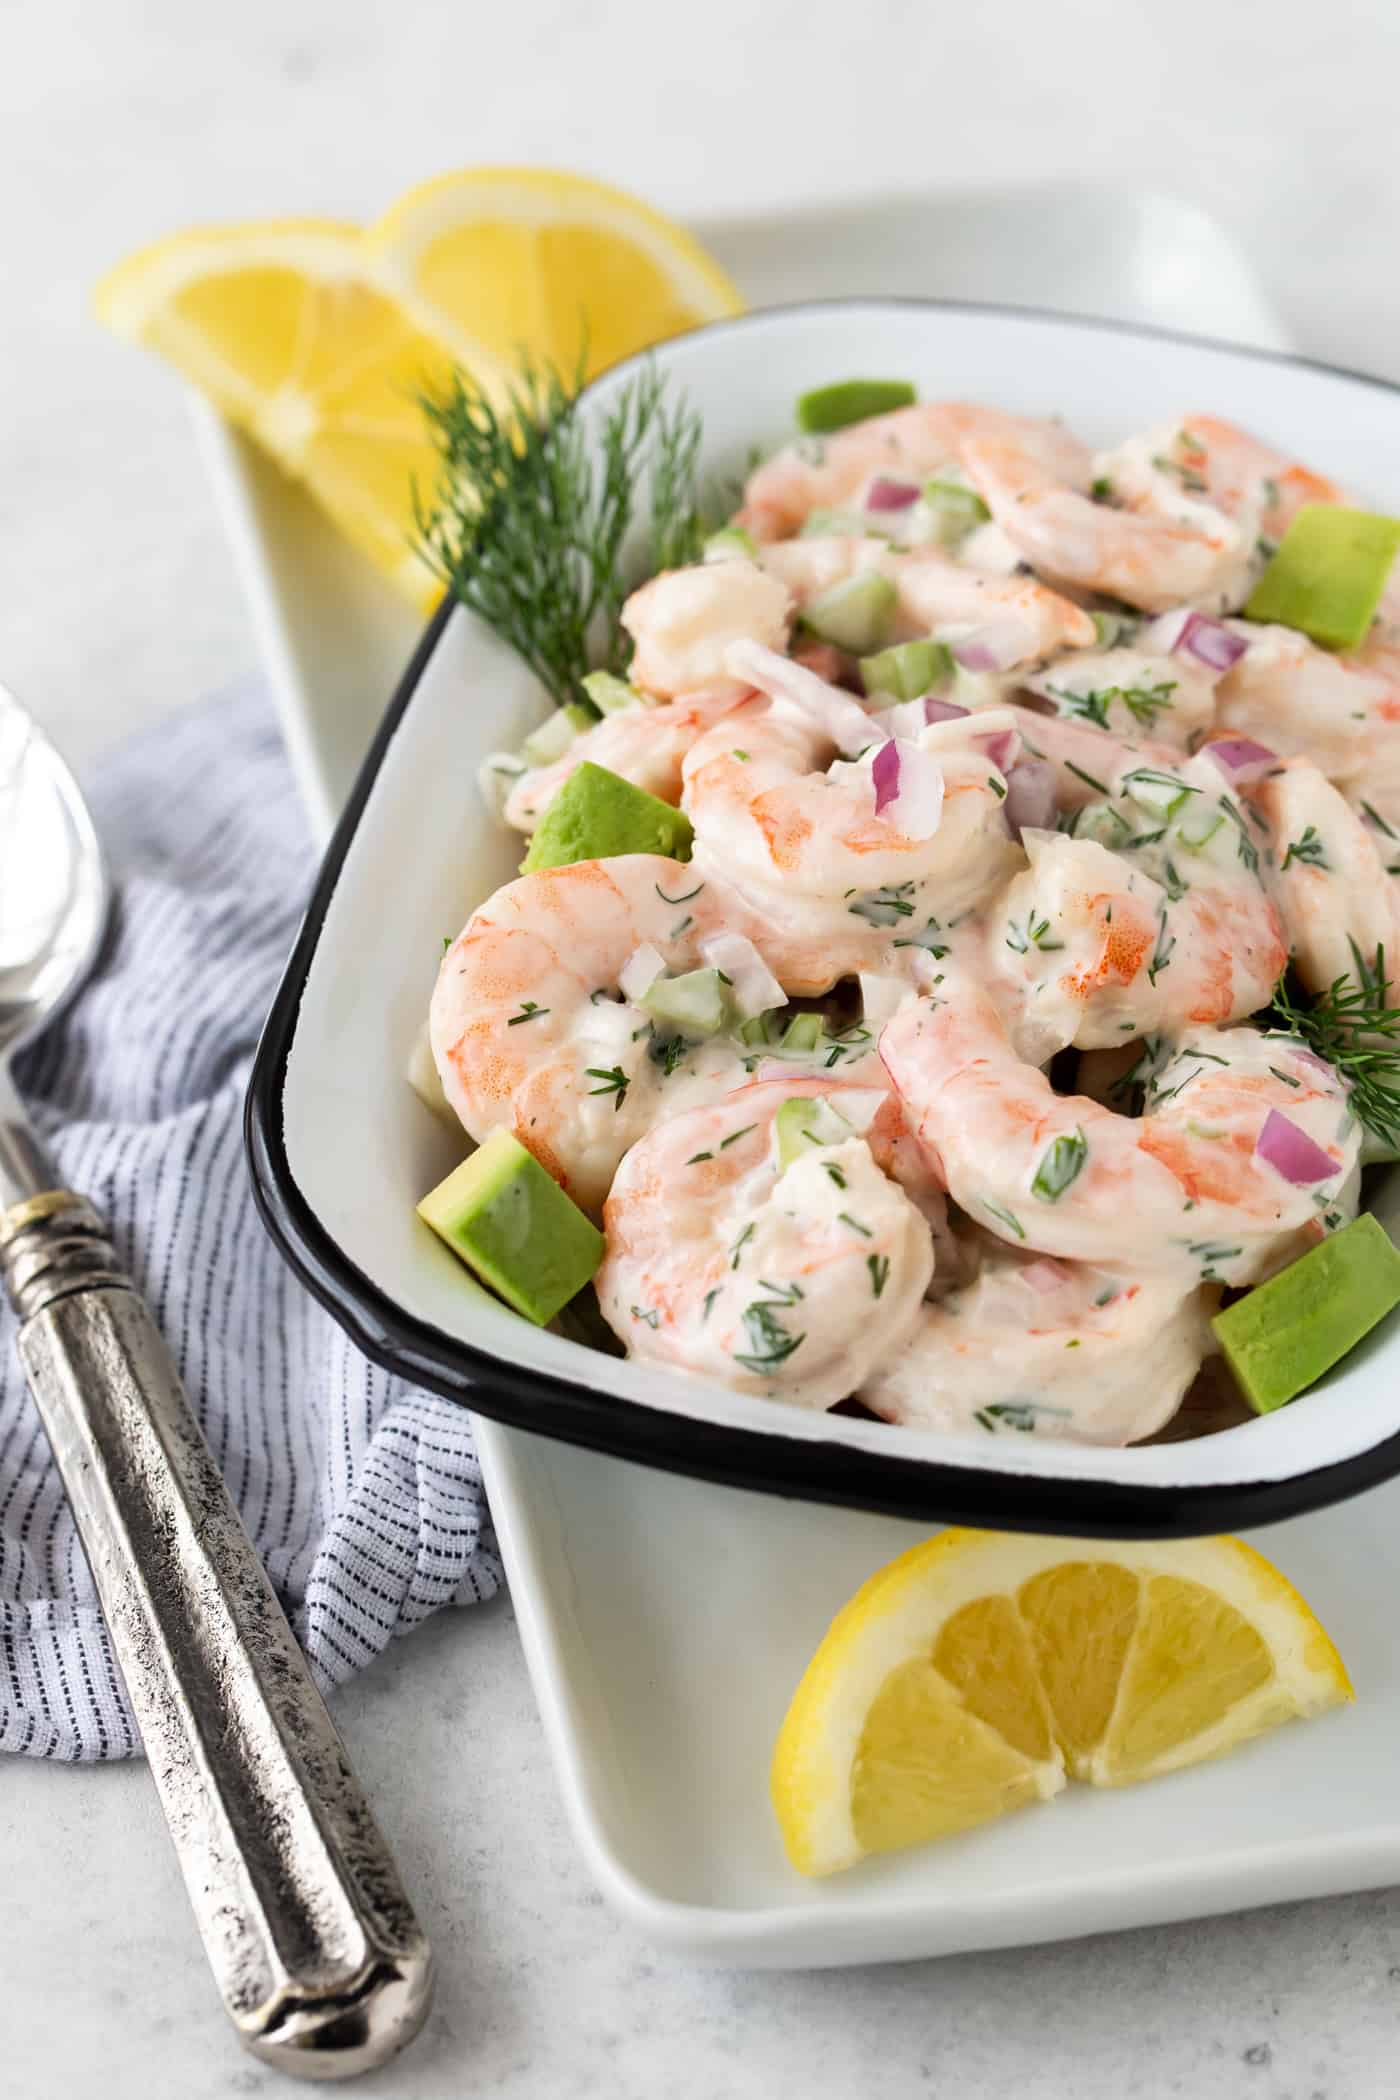 Shrimp Salad with Avocado in a white serving bowl with fresh dill and lemon wedges for garnish.